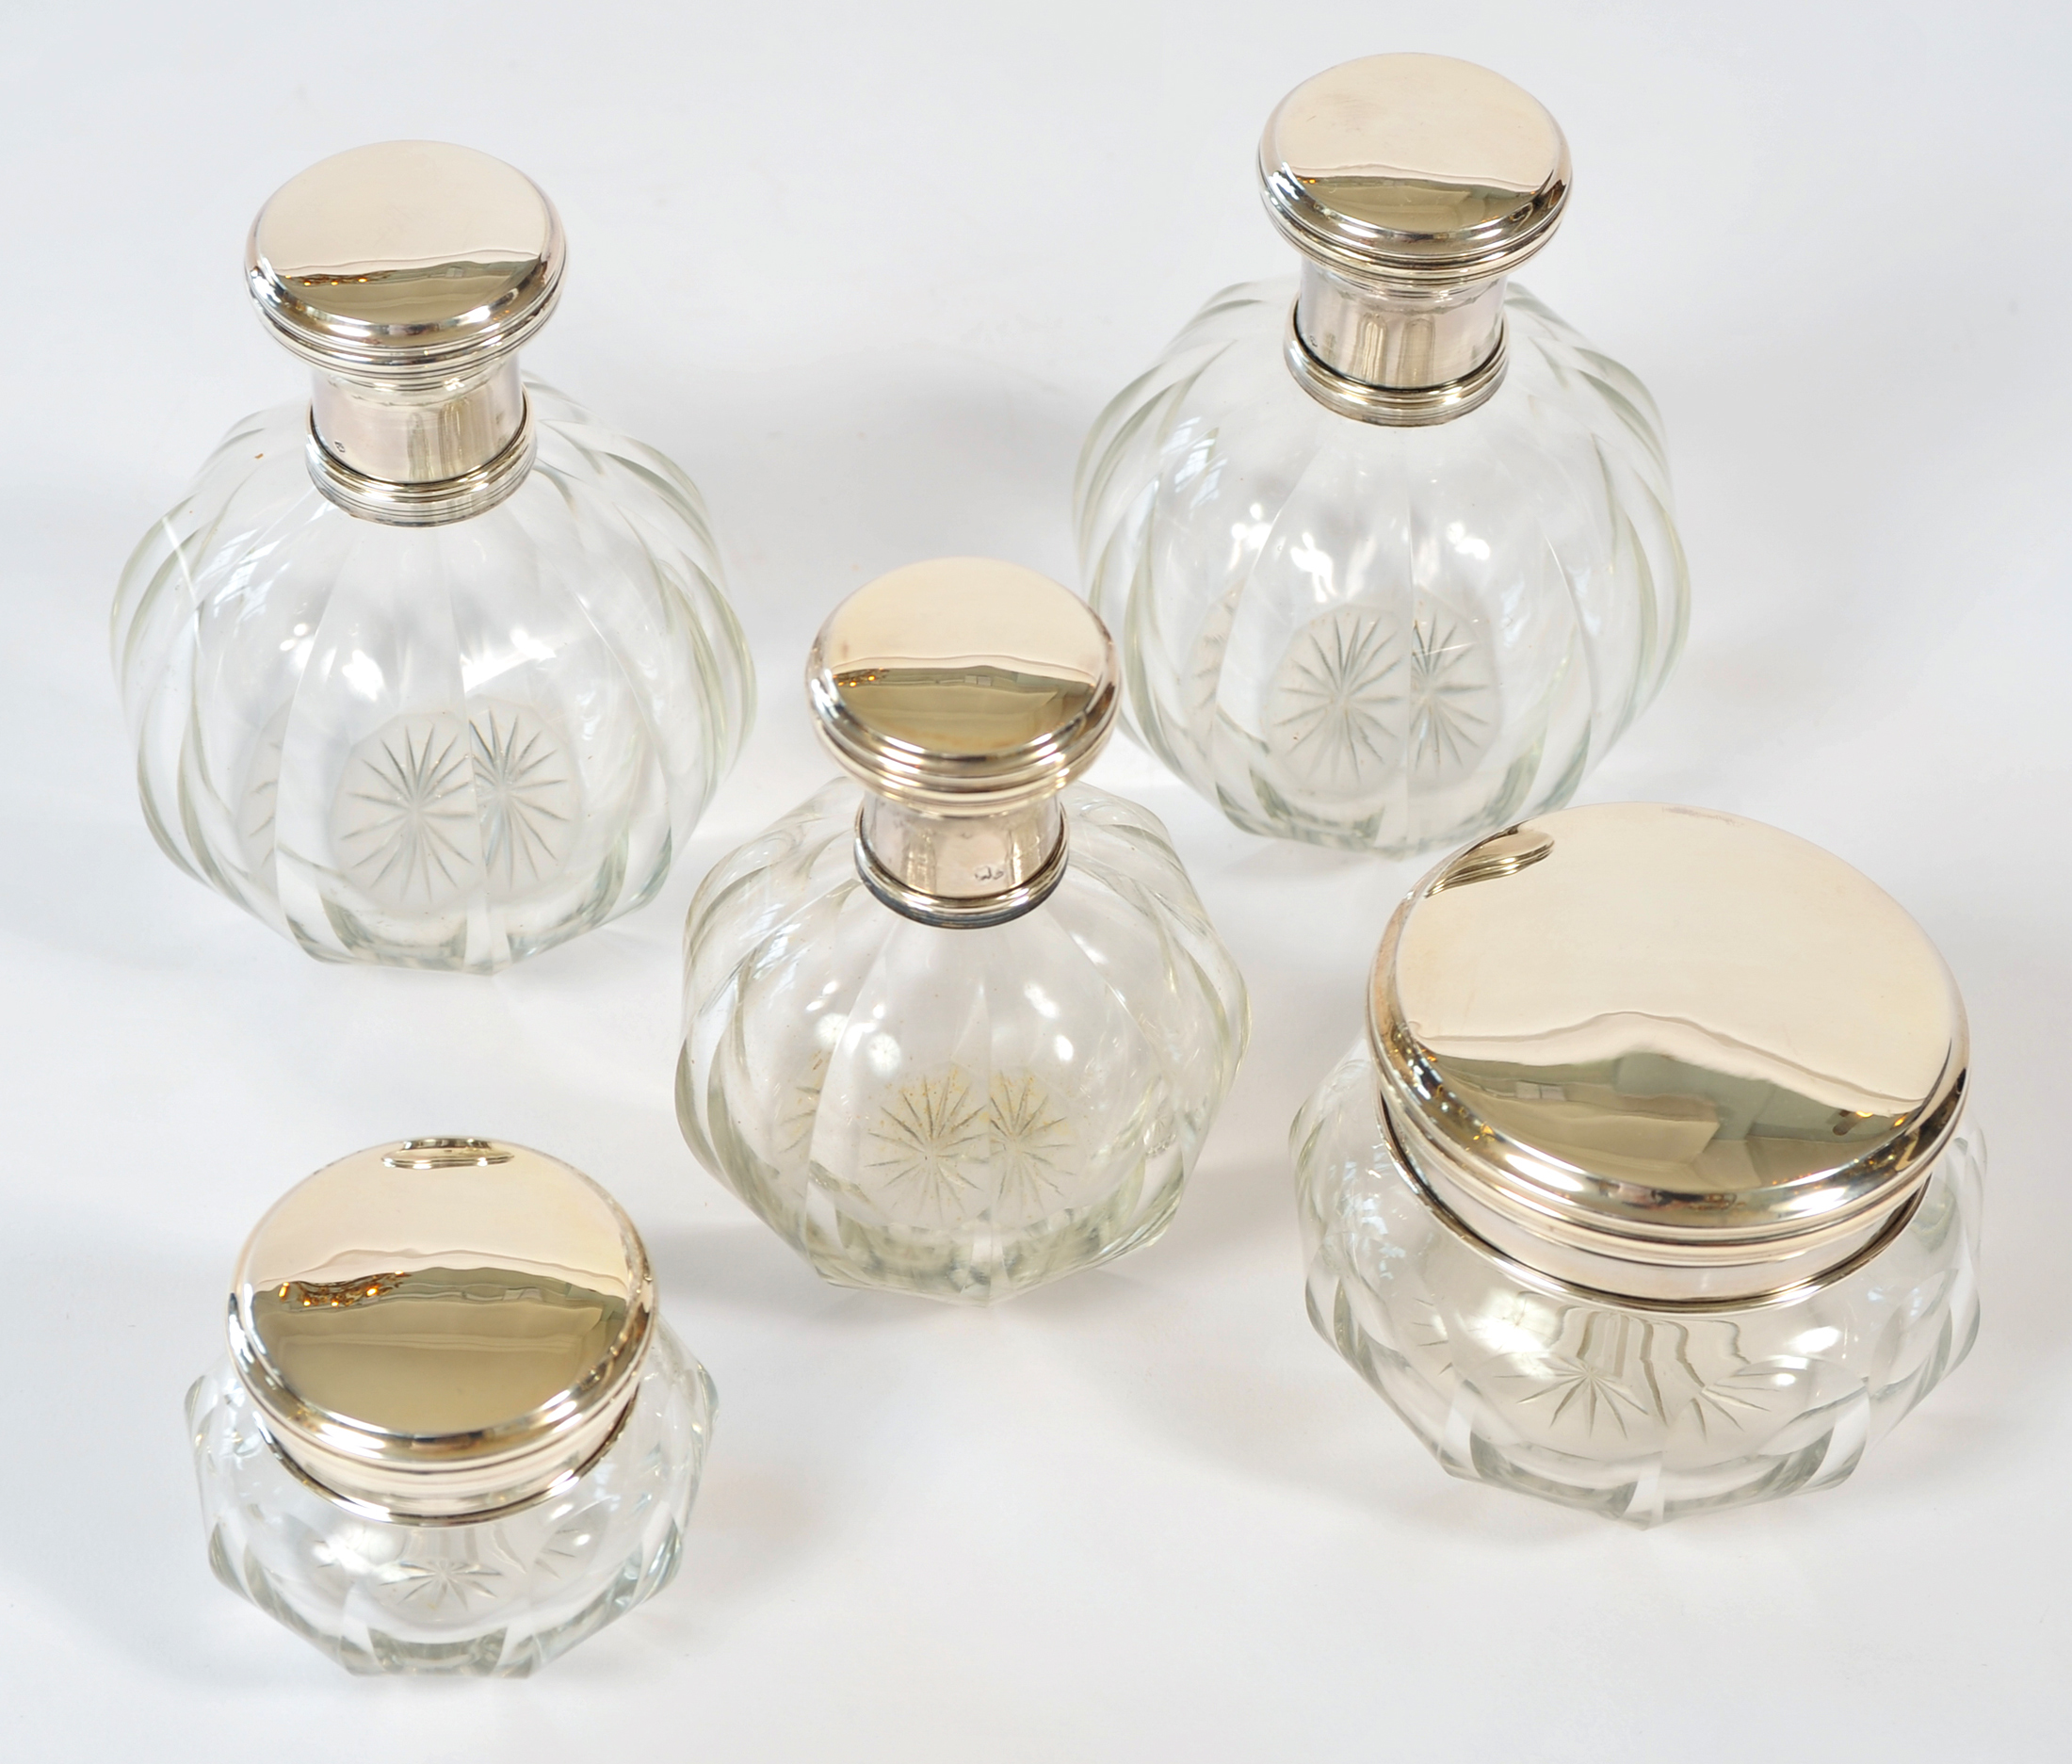 Scent Bottle Set 04